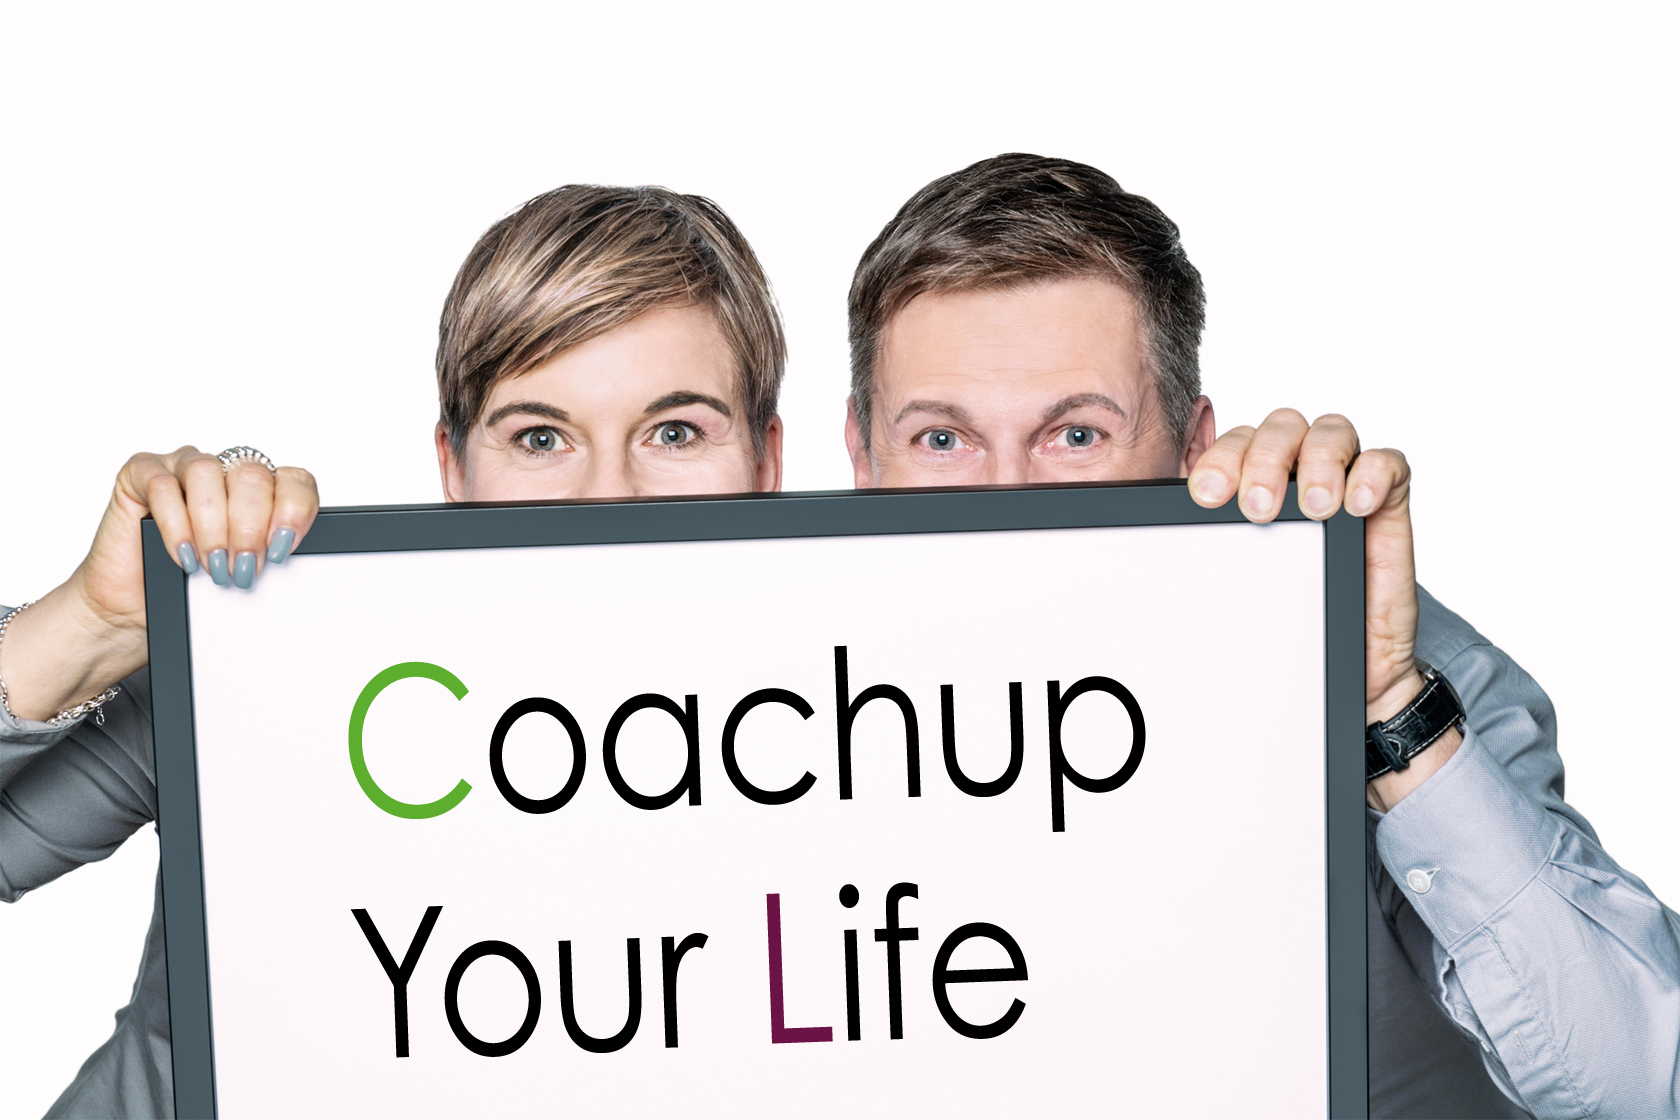 Aim Coaching. Blog. Coachup Your Life.